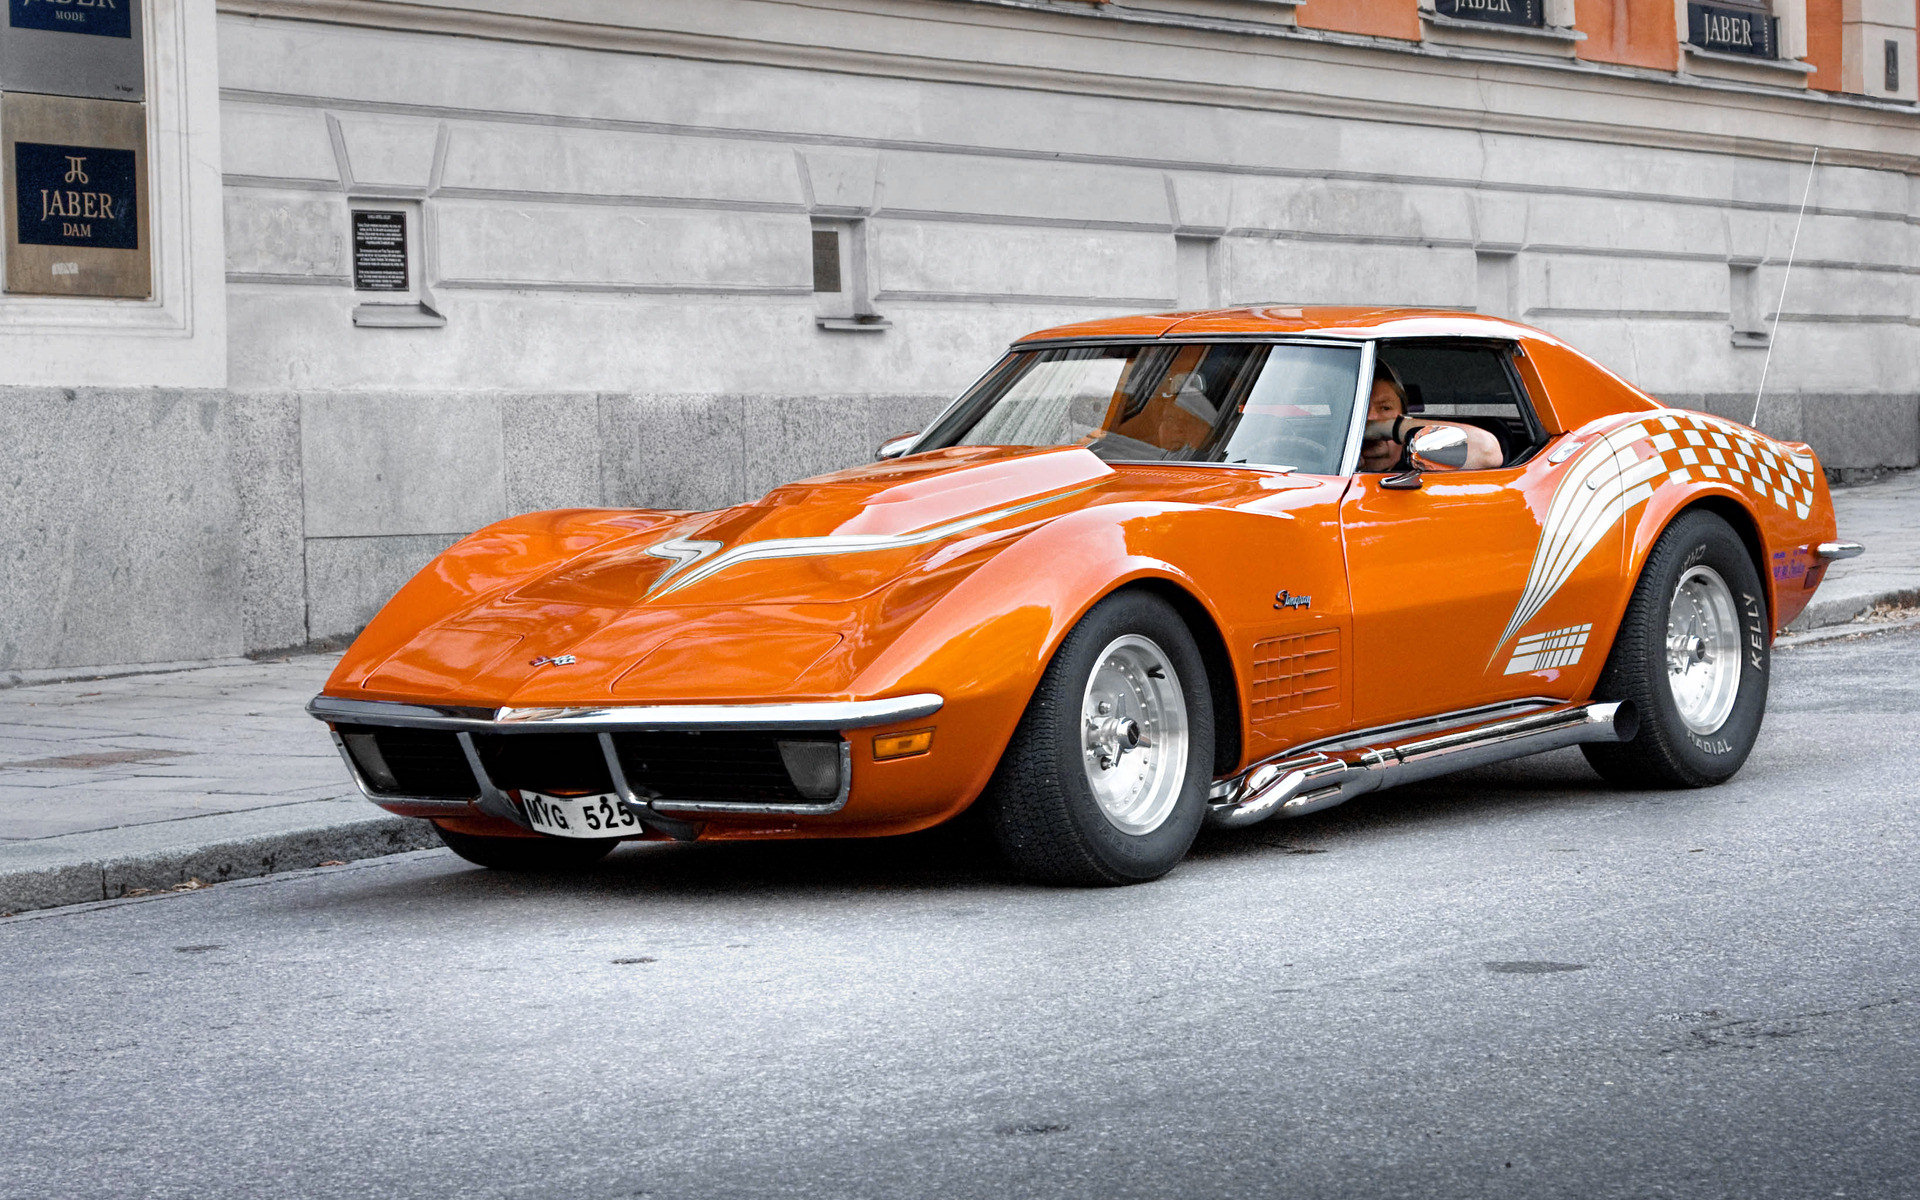 Corvette Stingray Wallpaper Best Collection Wallpaper with 1920x1200 1920x1200